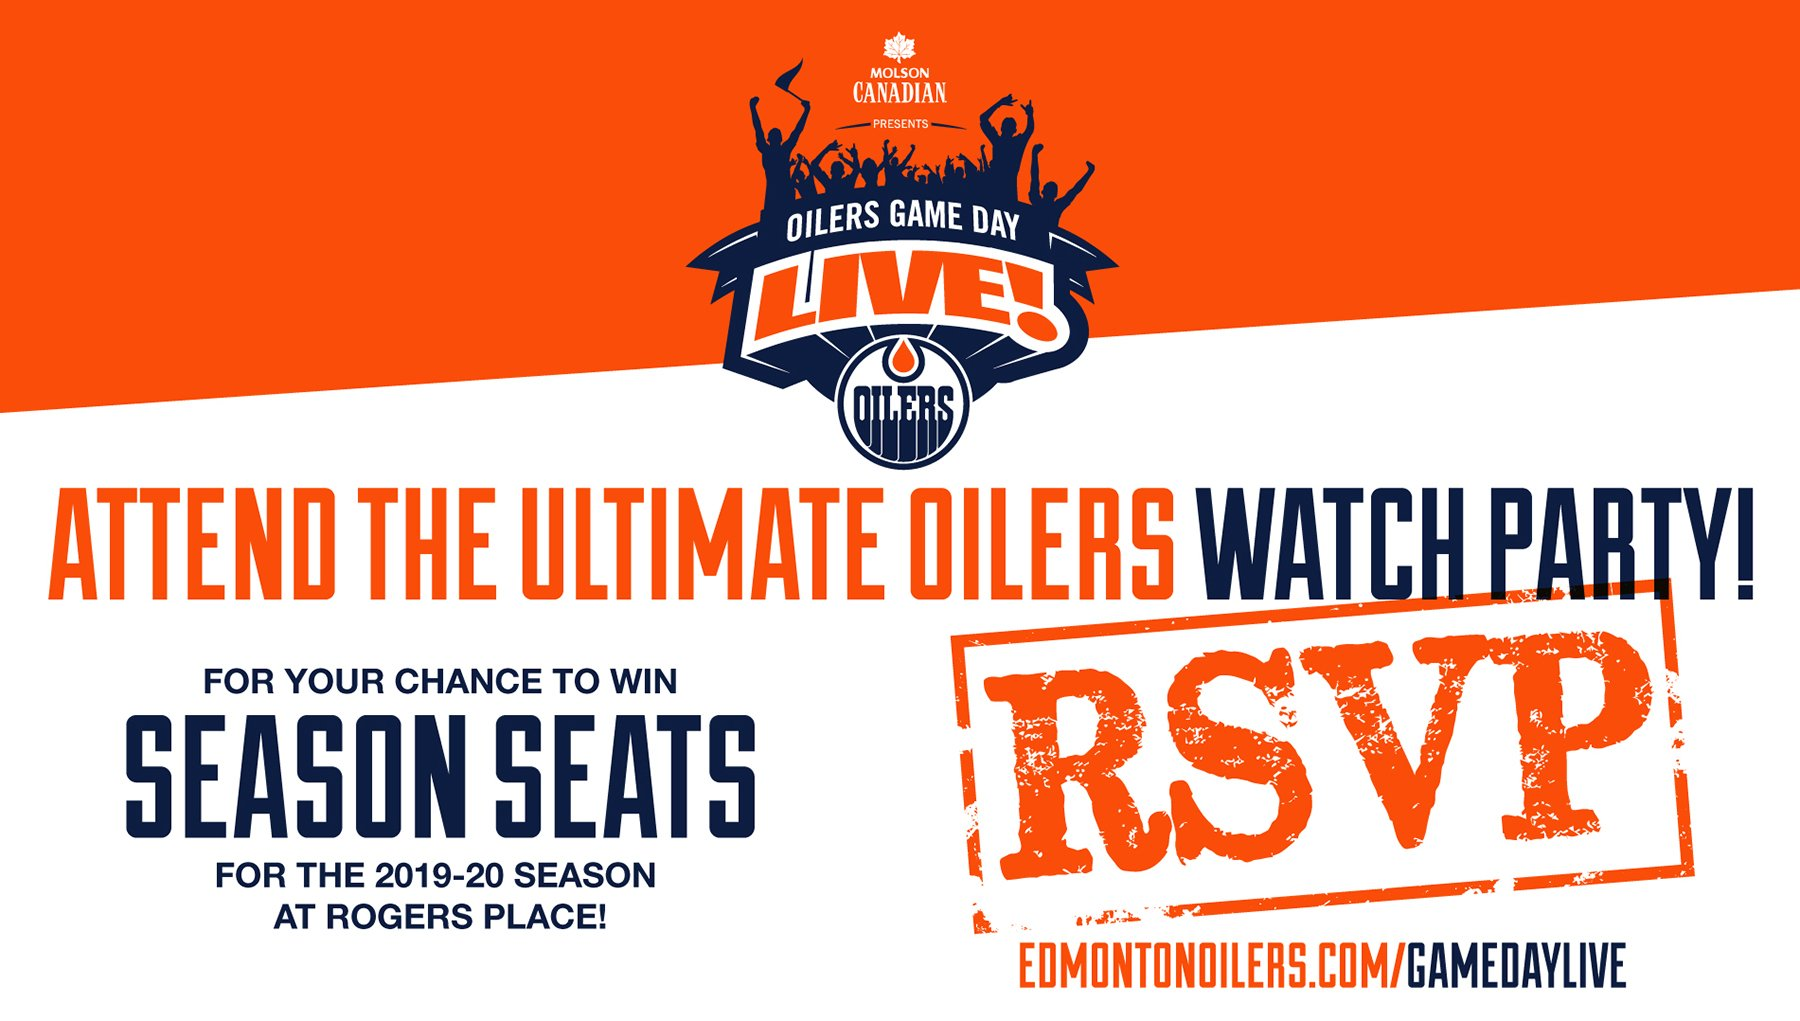 Edmonton Oilers On Twitter Highrun Club 4926 98 Ave Nw Is The Molson Canadian Gamedaylive Location For Tonight S Oilers Vs Vegas Golden Knights Matchup Rsvp Full Details At Https T Co Jemsvmvhrh Https T Co 5qeenwgbmw